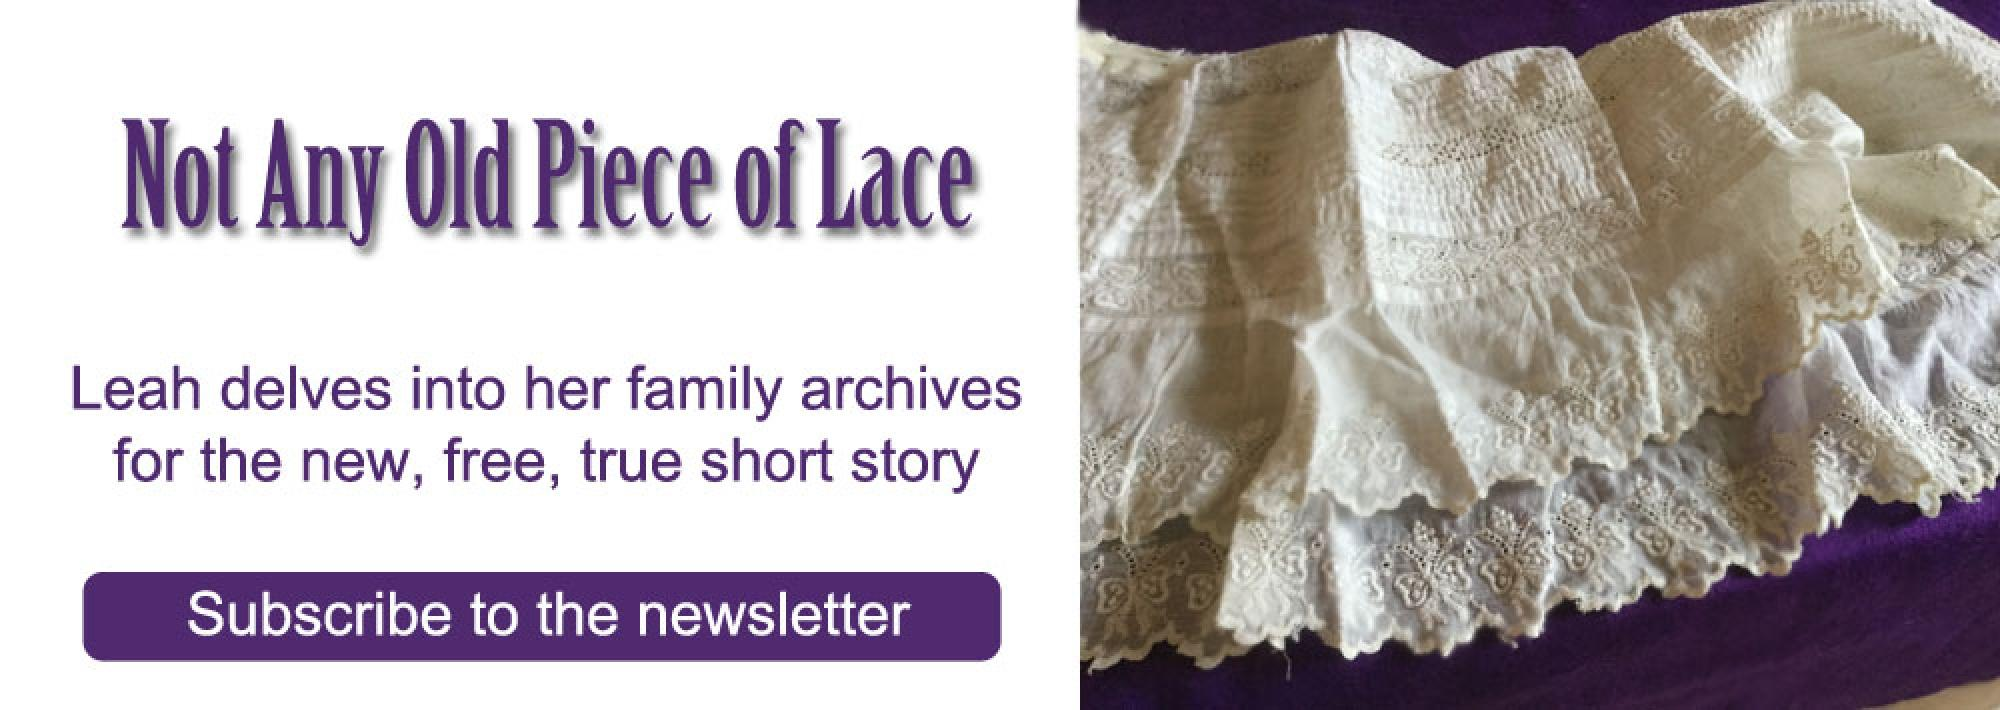 http://www.leahfleming.co.uk/leahs-newsletter-sign-up-form/